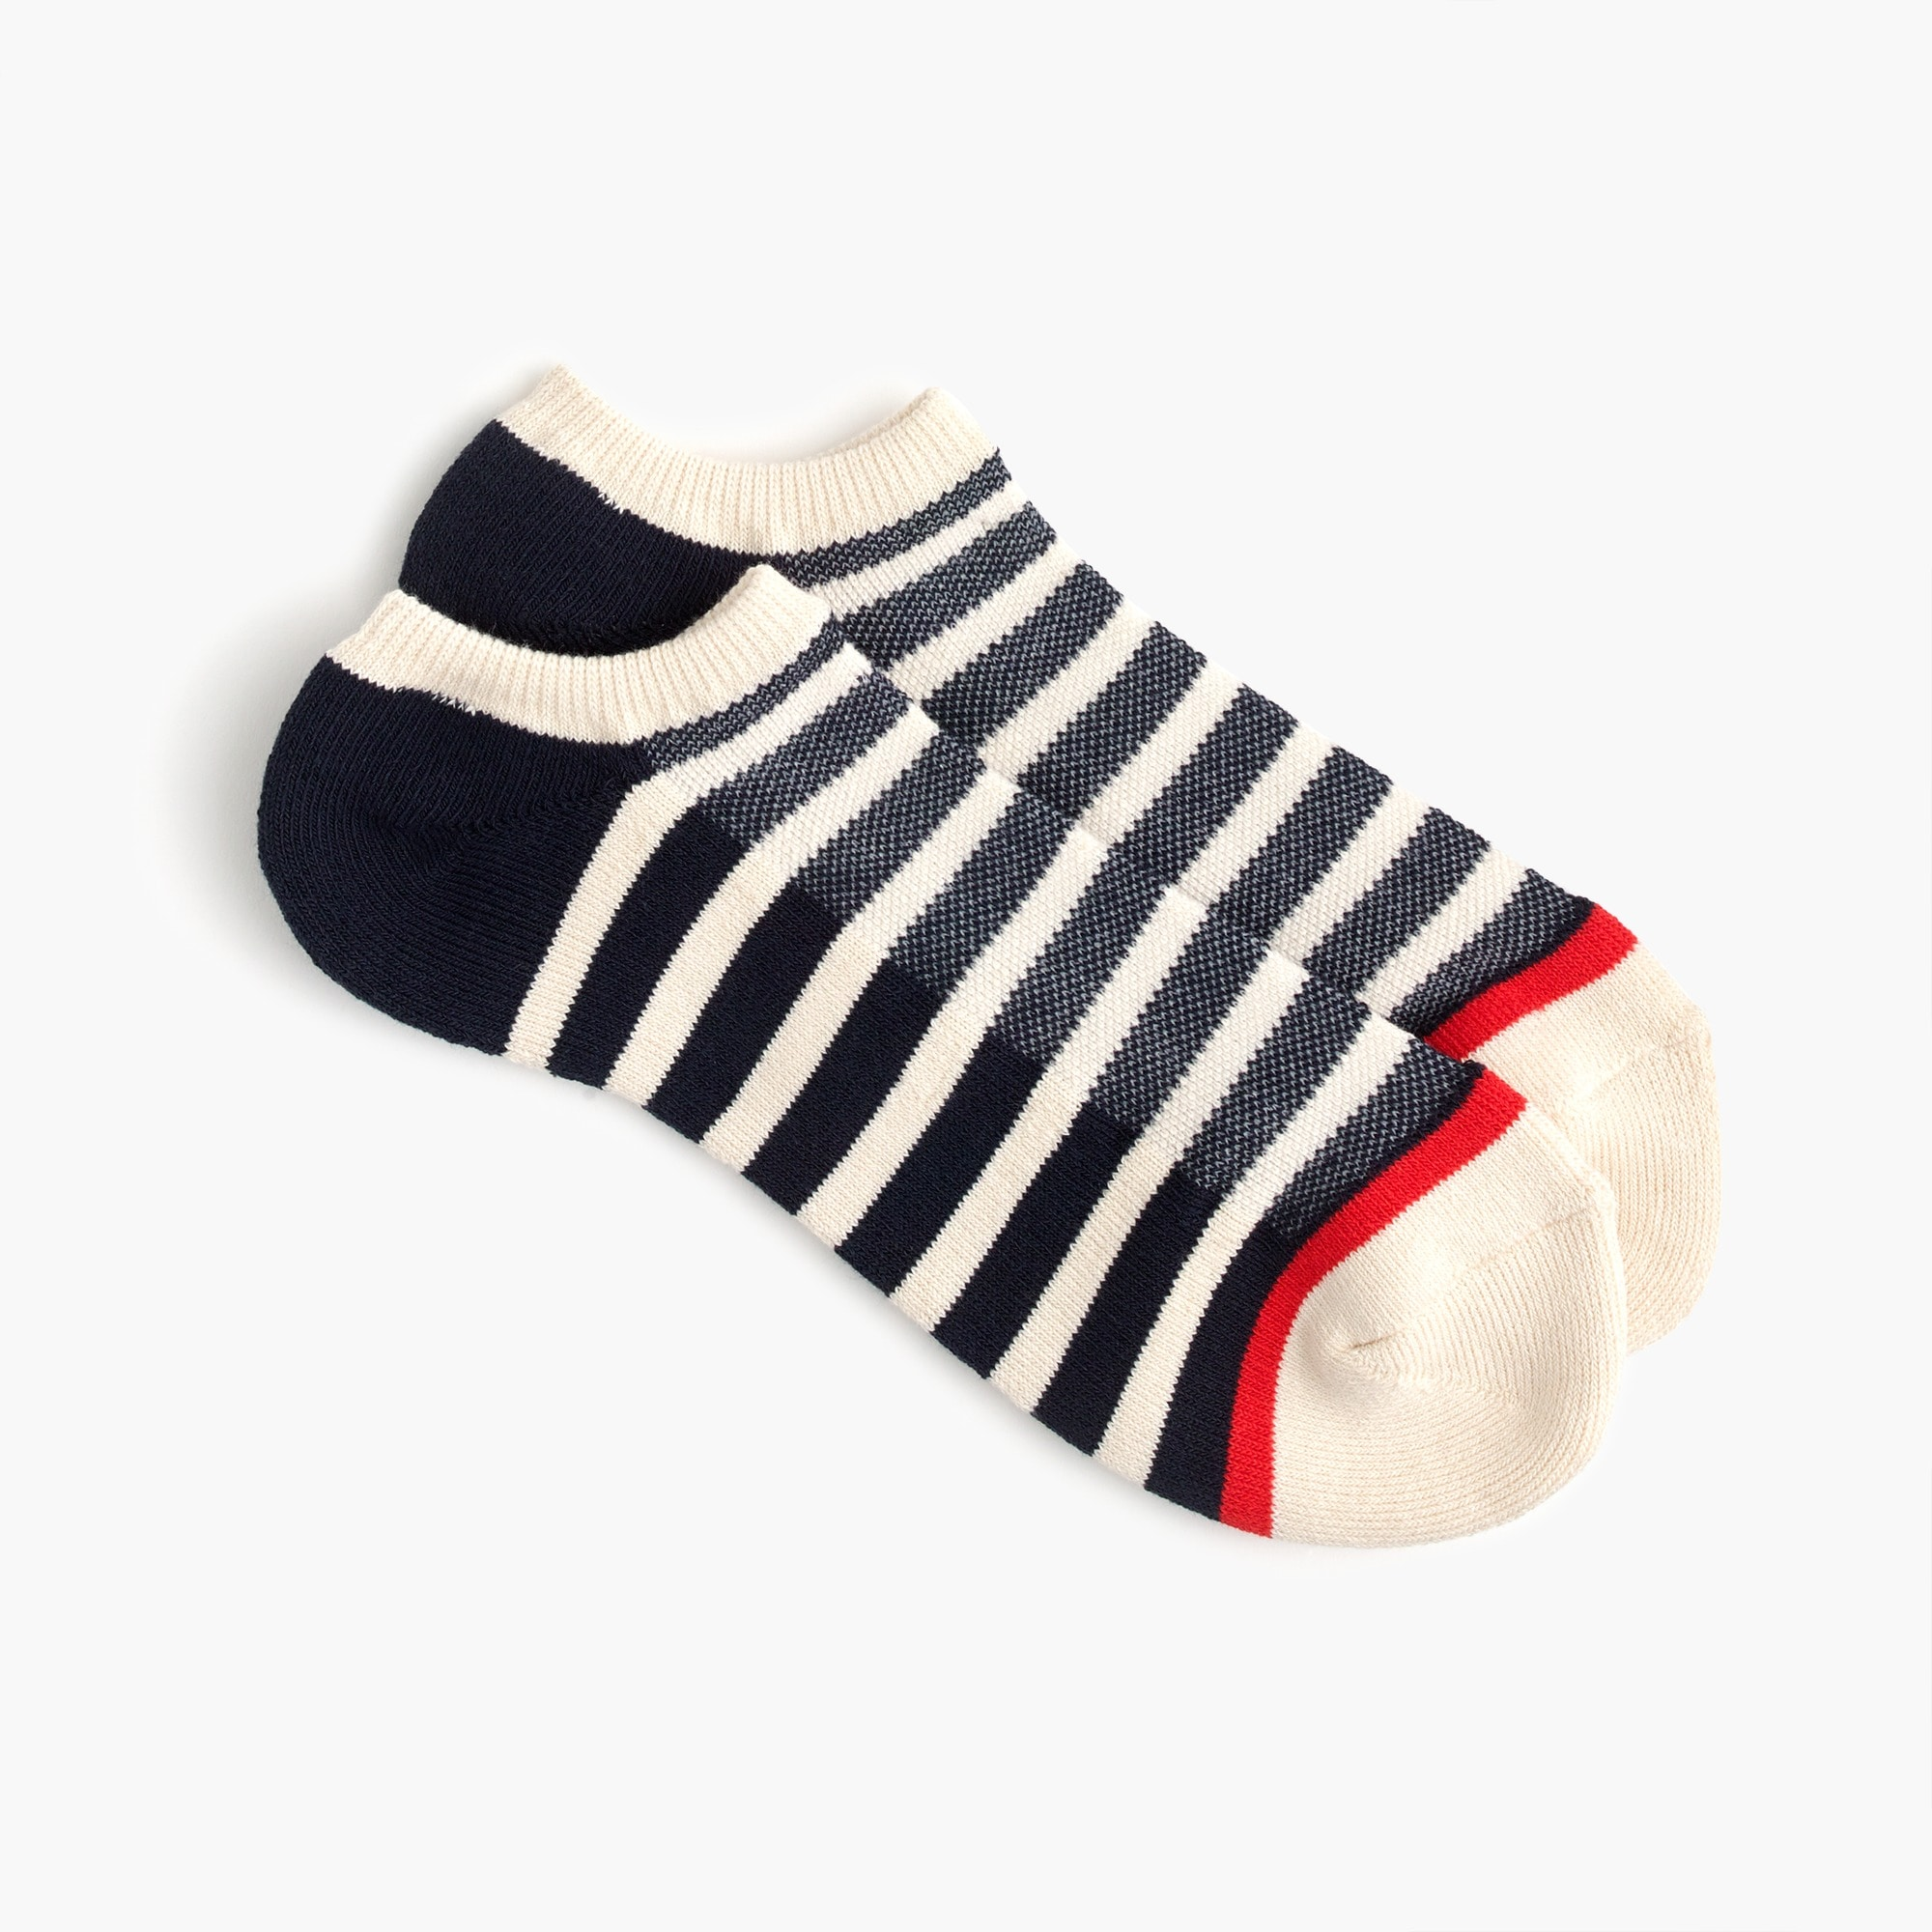 mens Striped athletic ankle socks